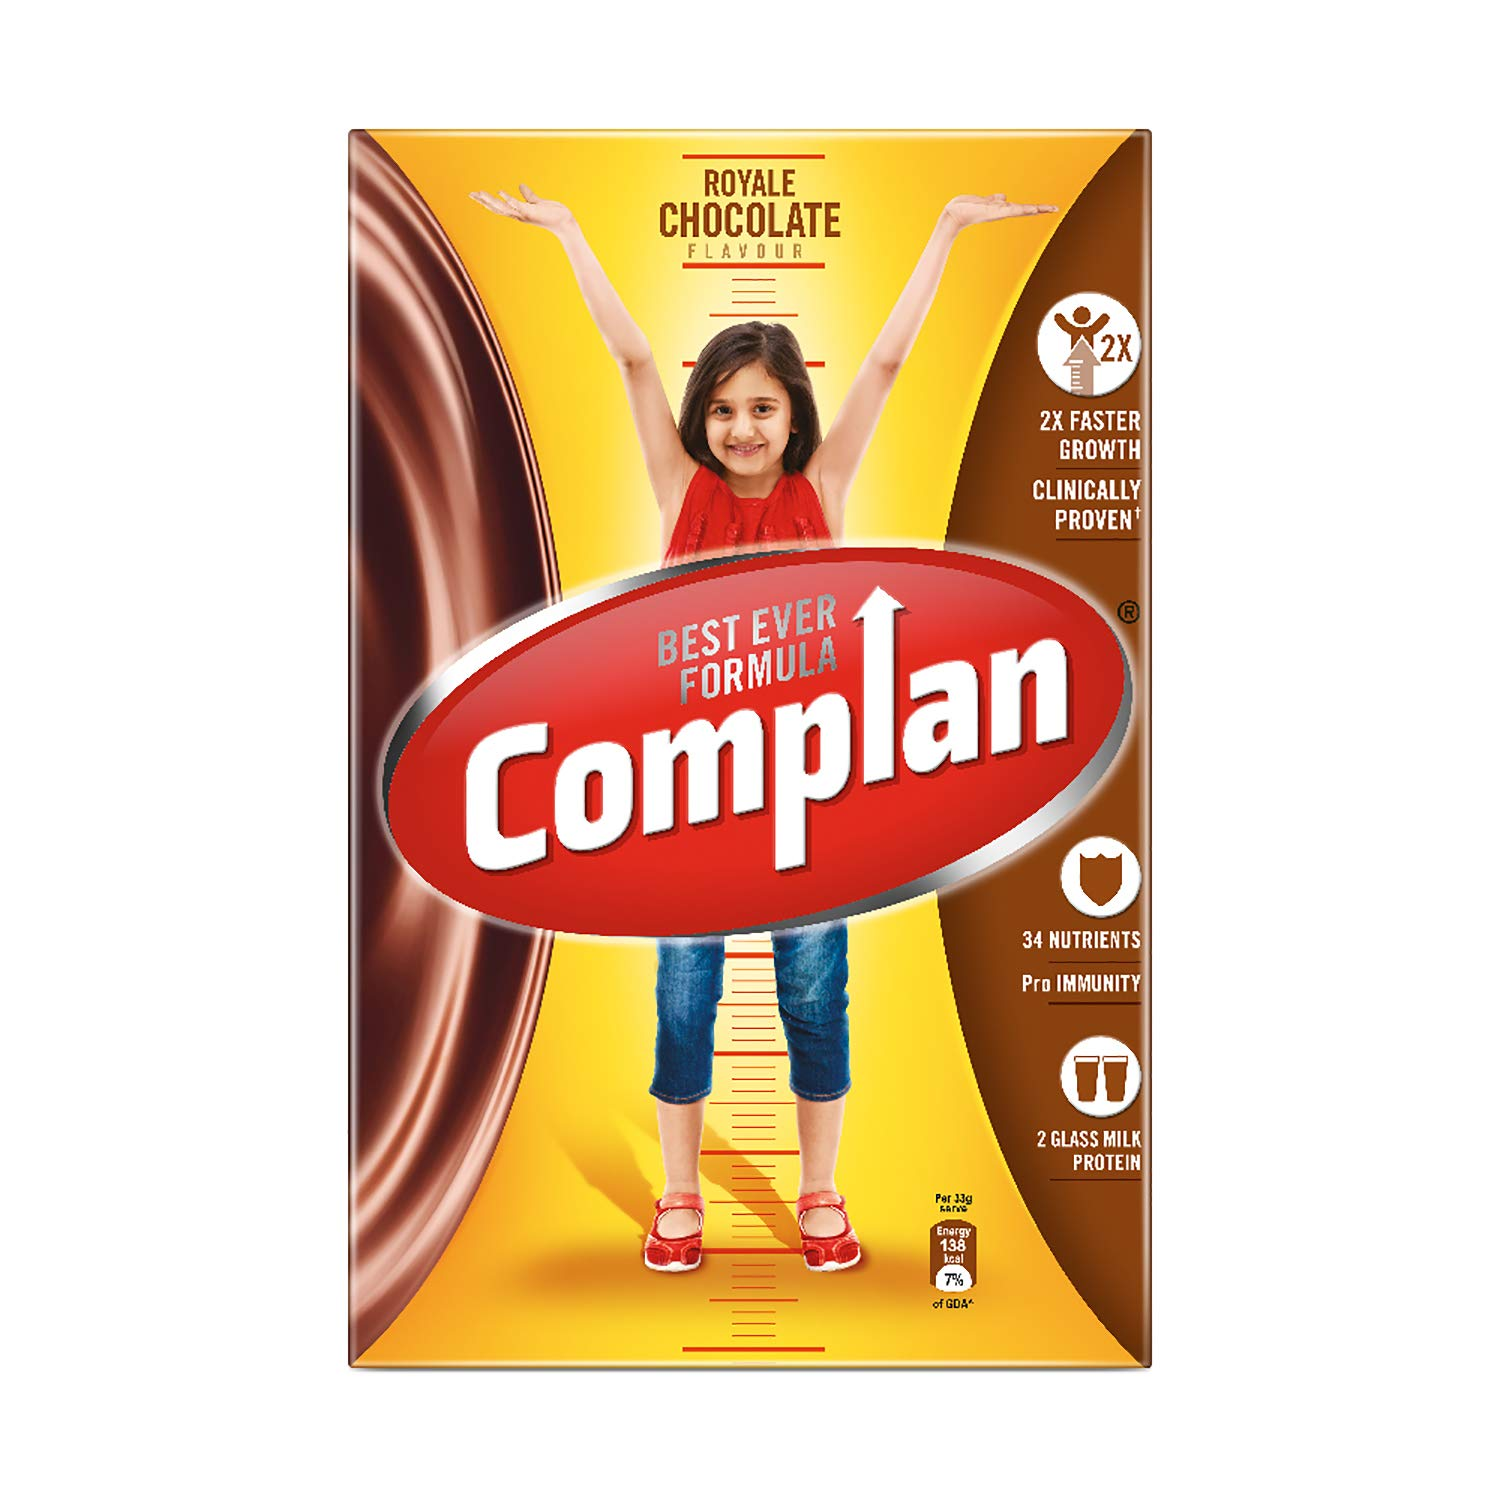 Complan Nutrition and Health Drink Royale Chocolate, 1kg (Carton)